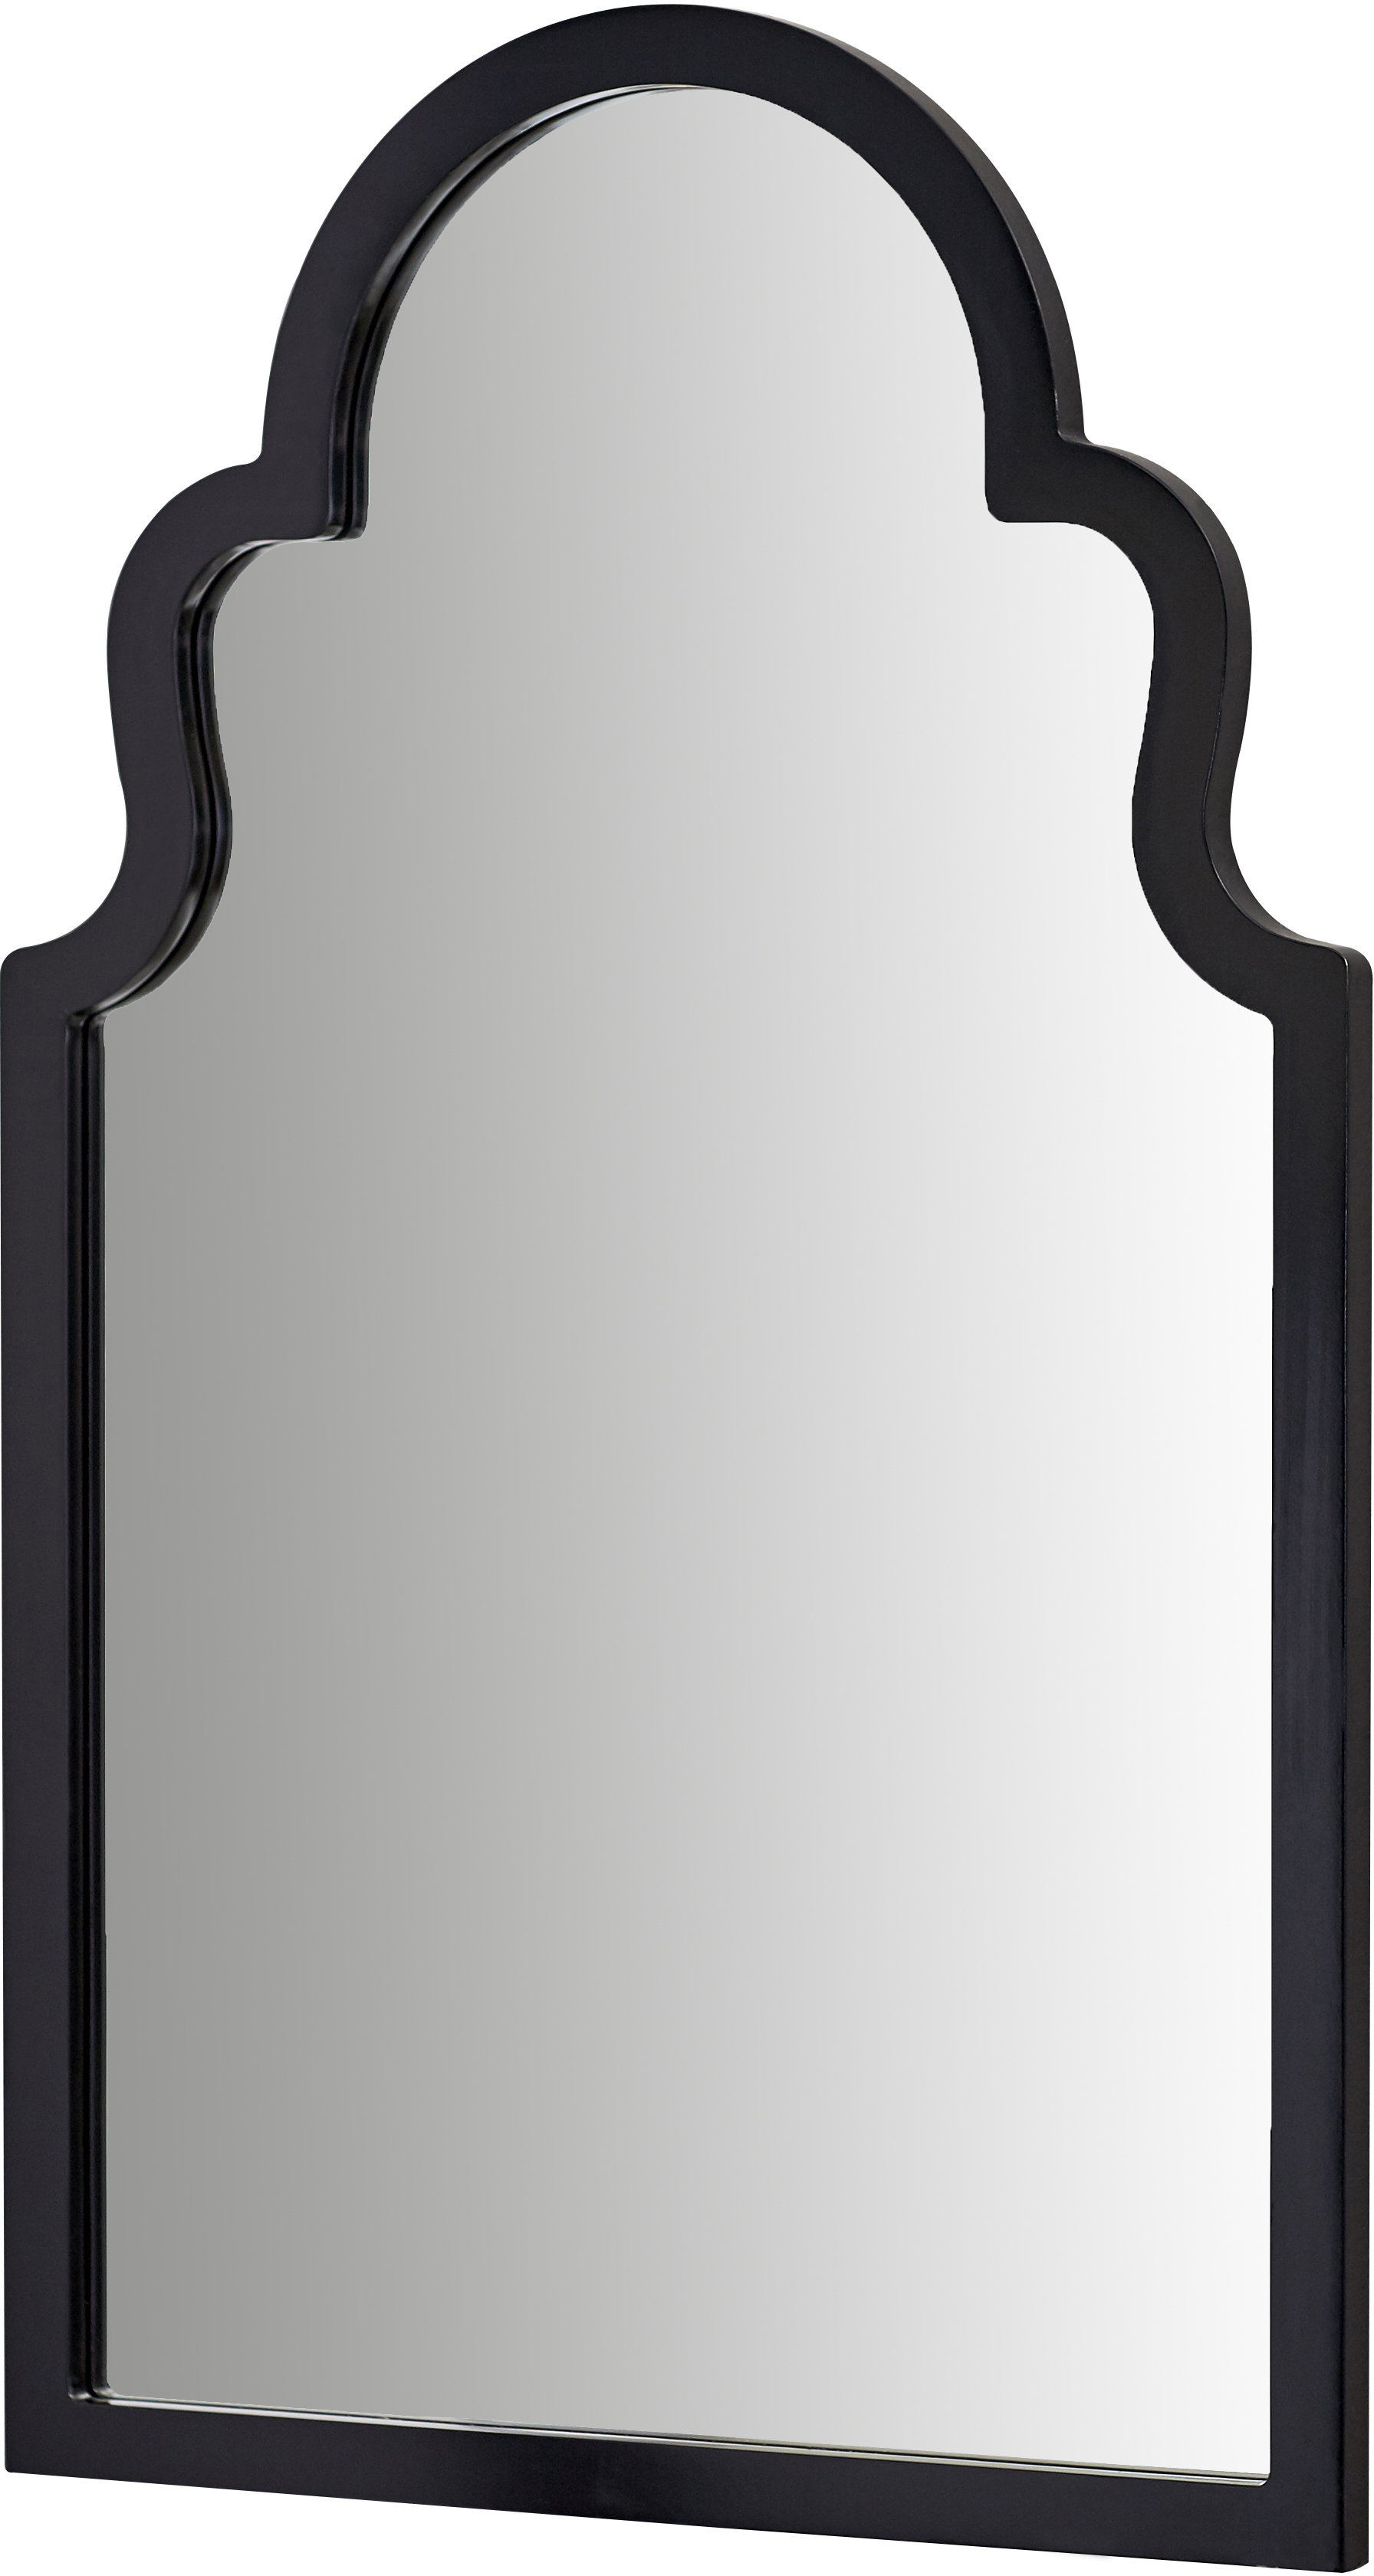 Willa Arlo Interiors Fifi Contemporary Arch Wall Mirror With Fifi Contemporary Arch Wall Mirrors (View 1 of 20)